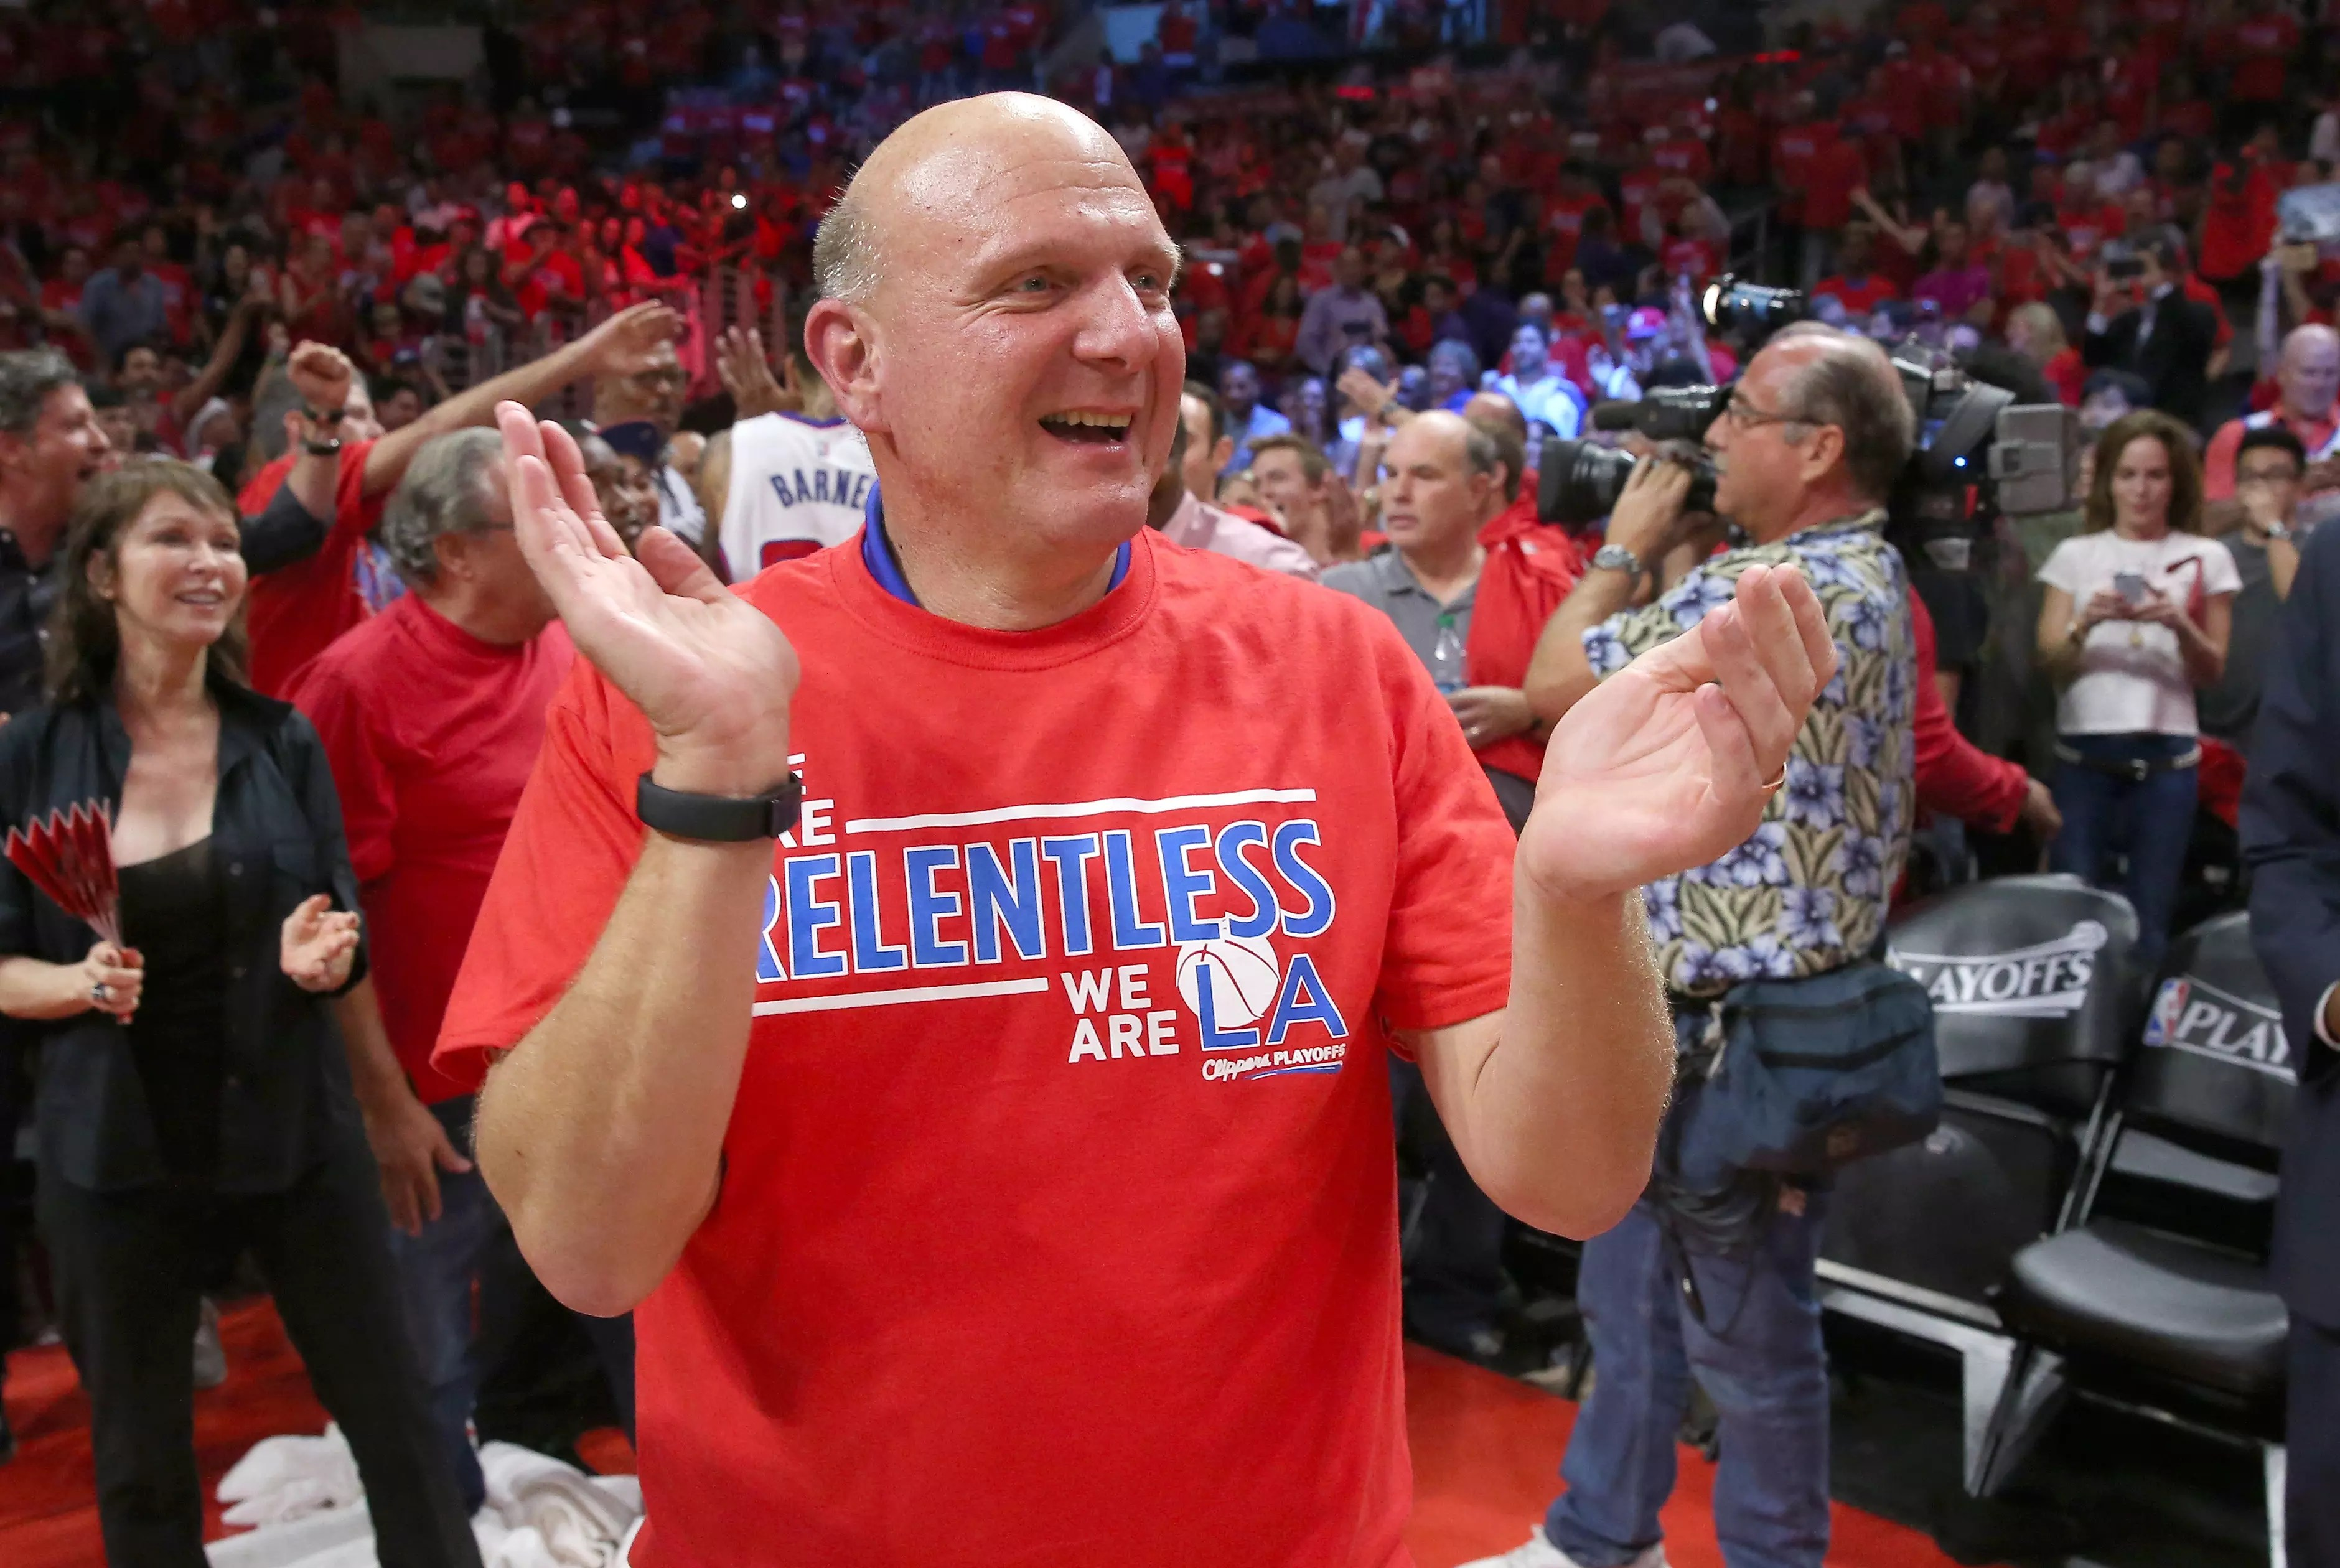 Clippers fans can bid to sit next to Steve Ballmer  AM